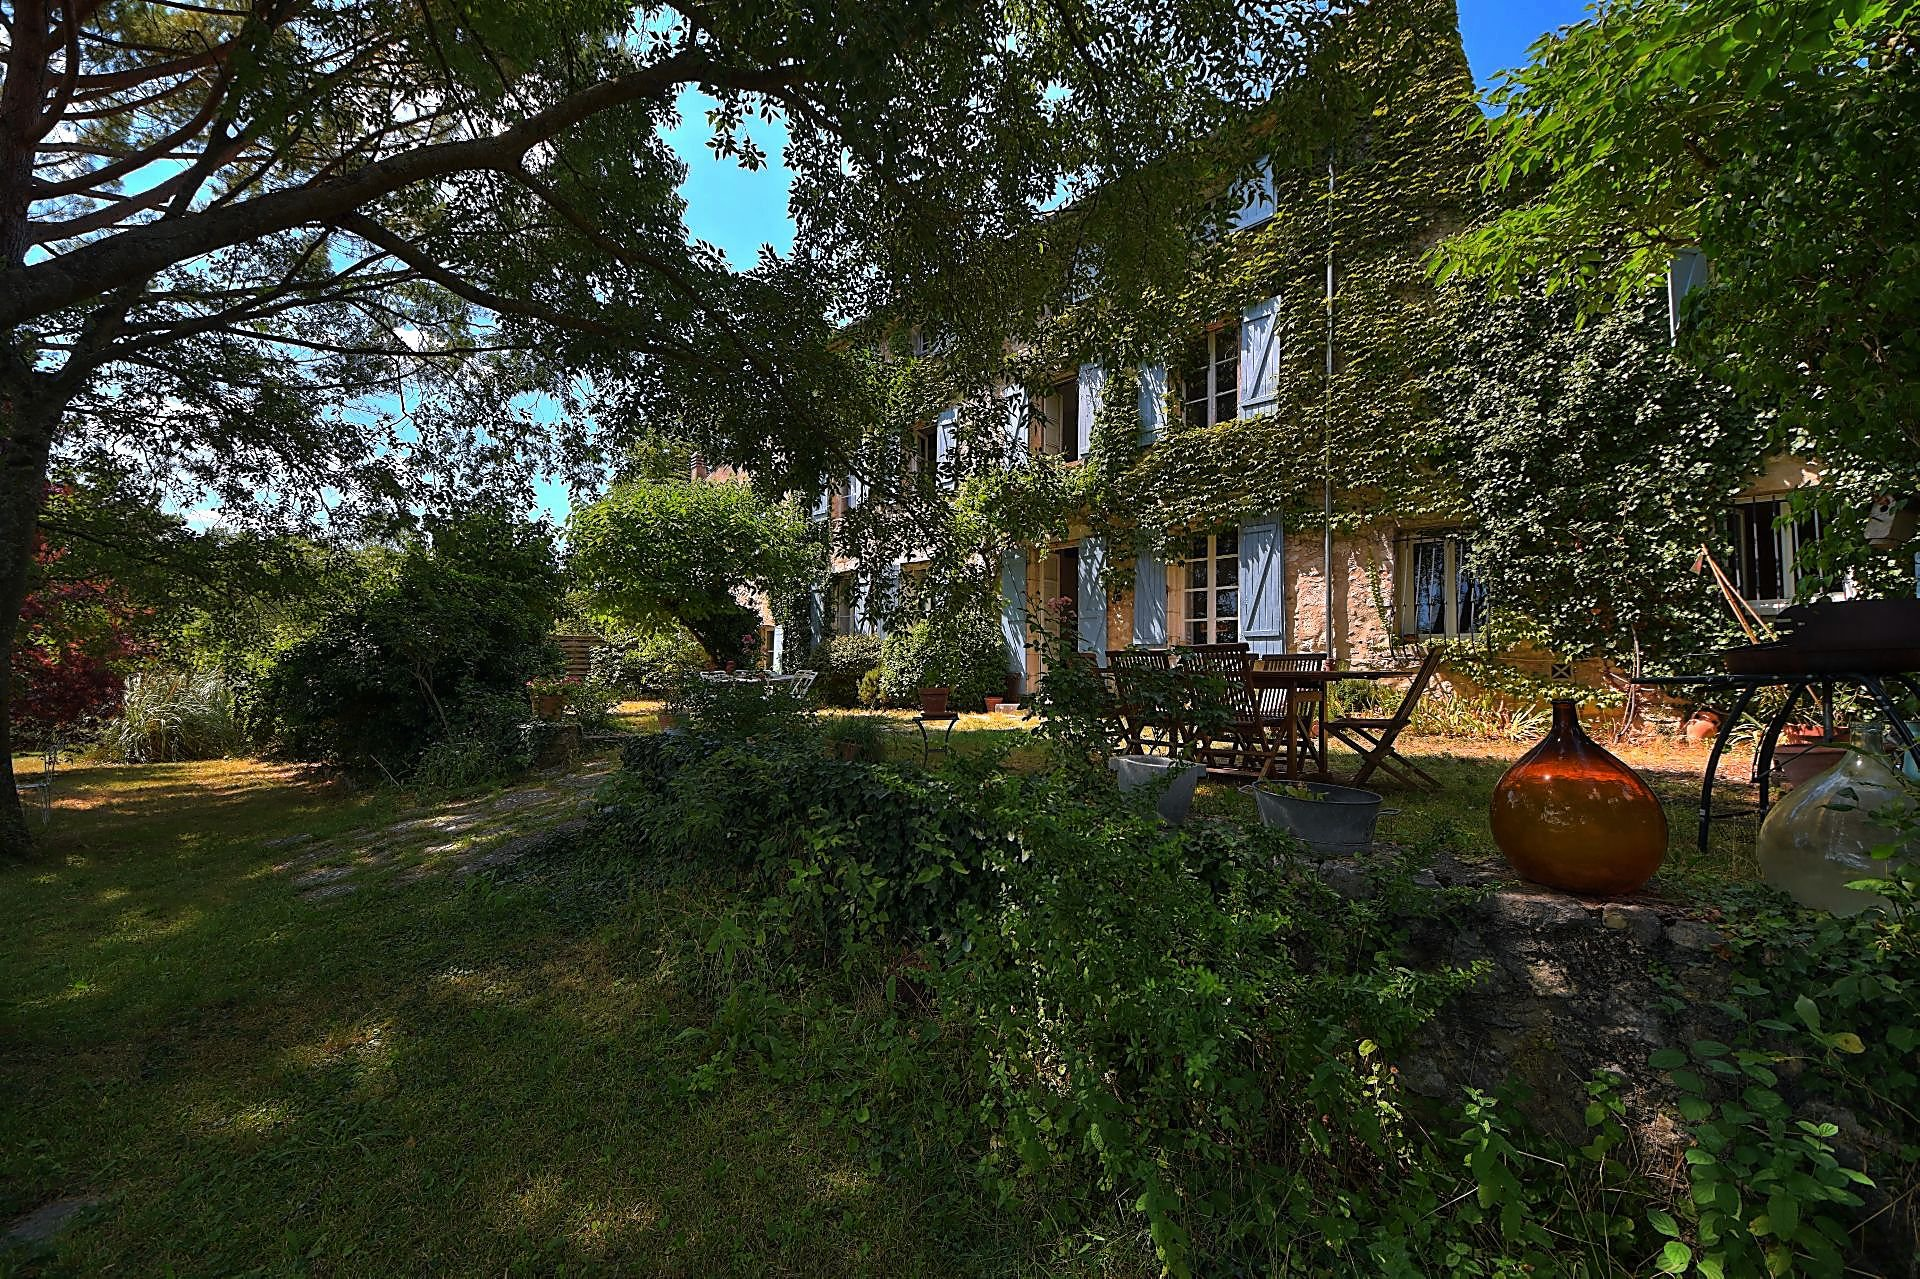 Domain of 147 ha in the heart of authentic Provence